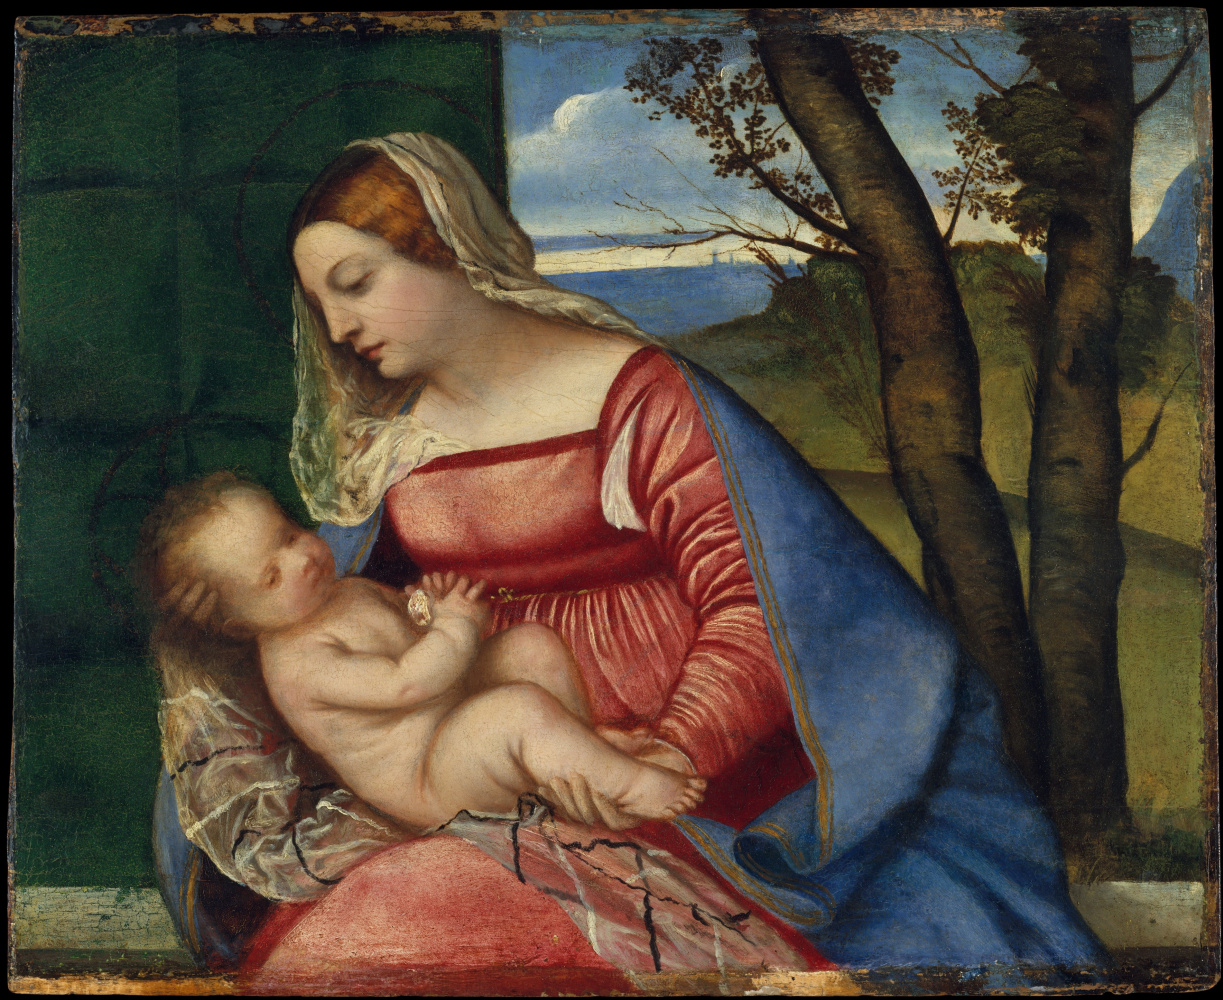 Titian Vecelli. The Madonna and child